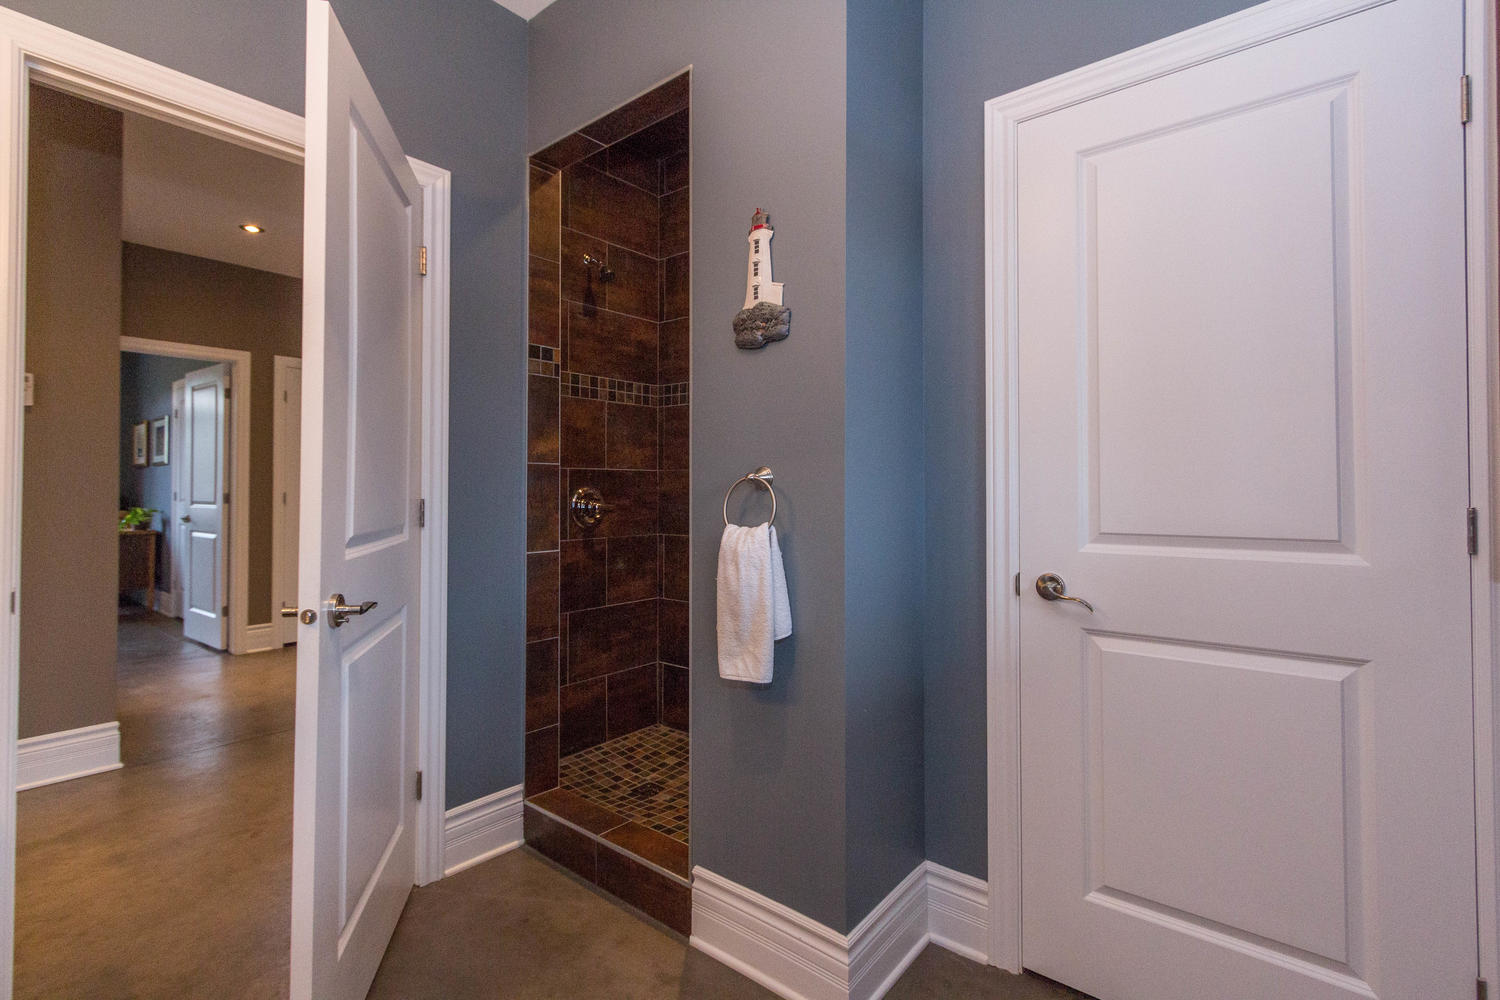 Second washroom with large and spacious tiled shower.